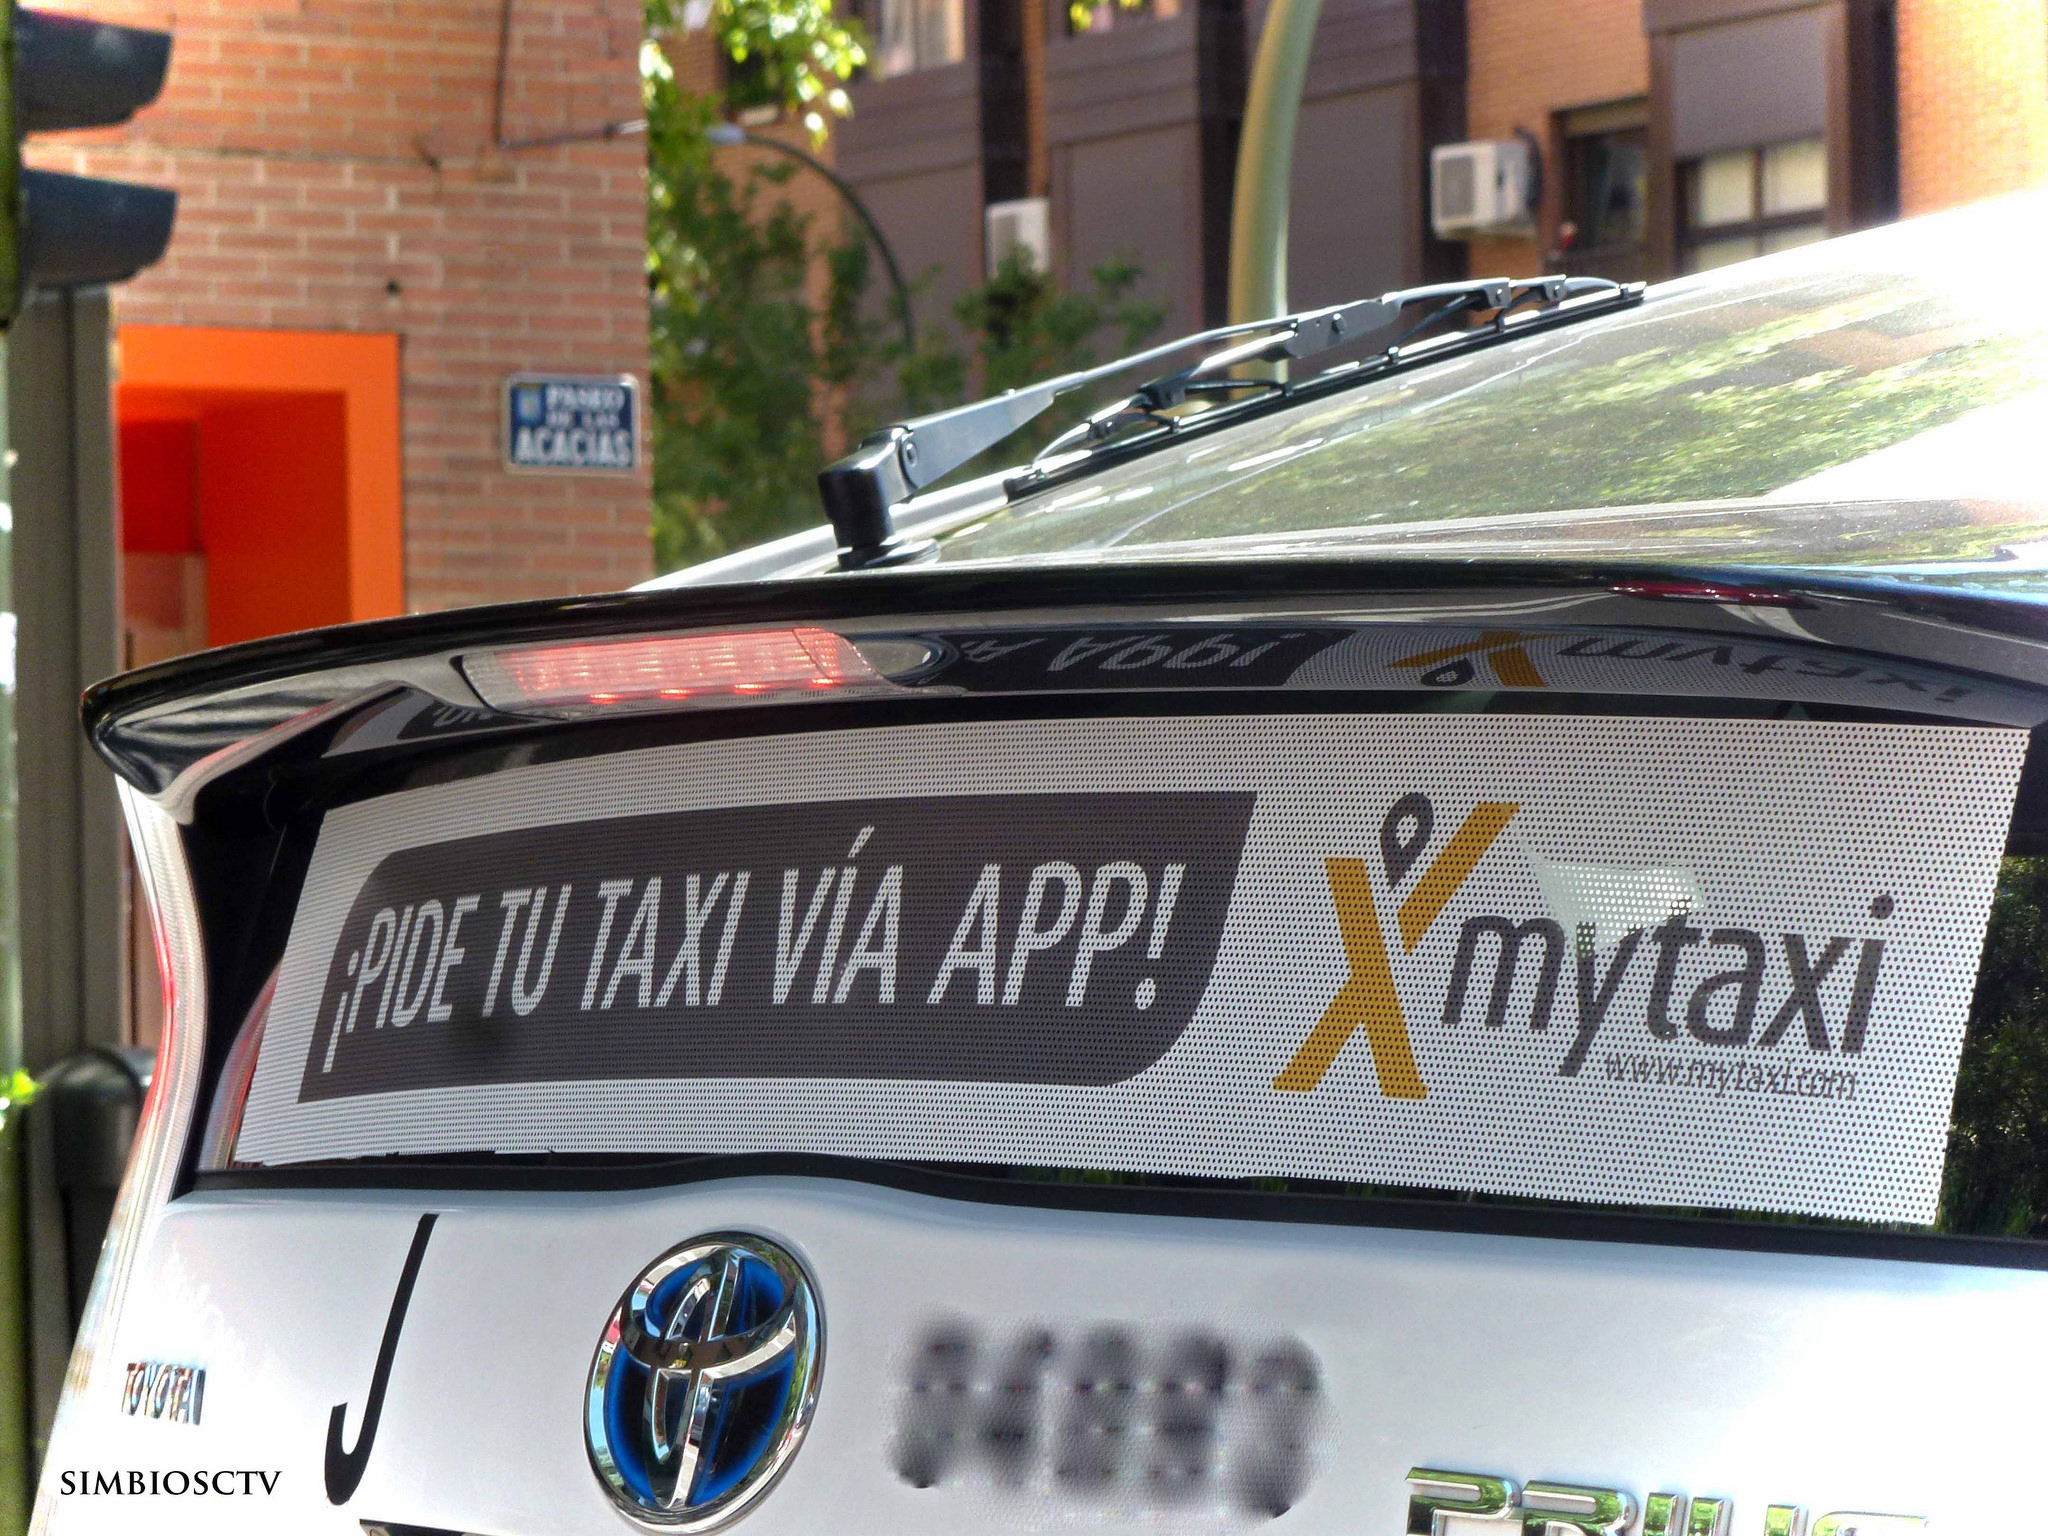 The myTaxi app spotted in the wild. Image courtesy of Cesar, Flickr Creative Commons.